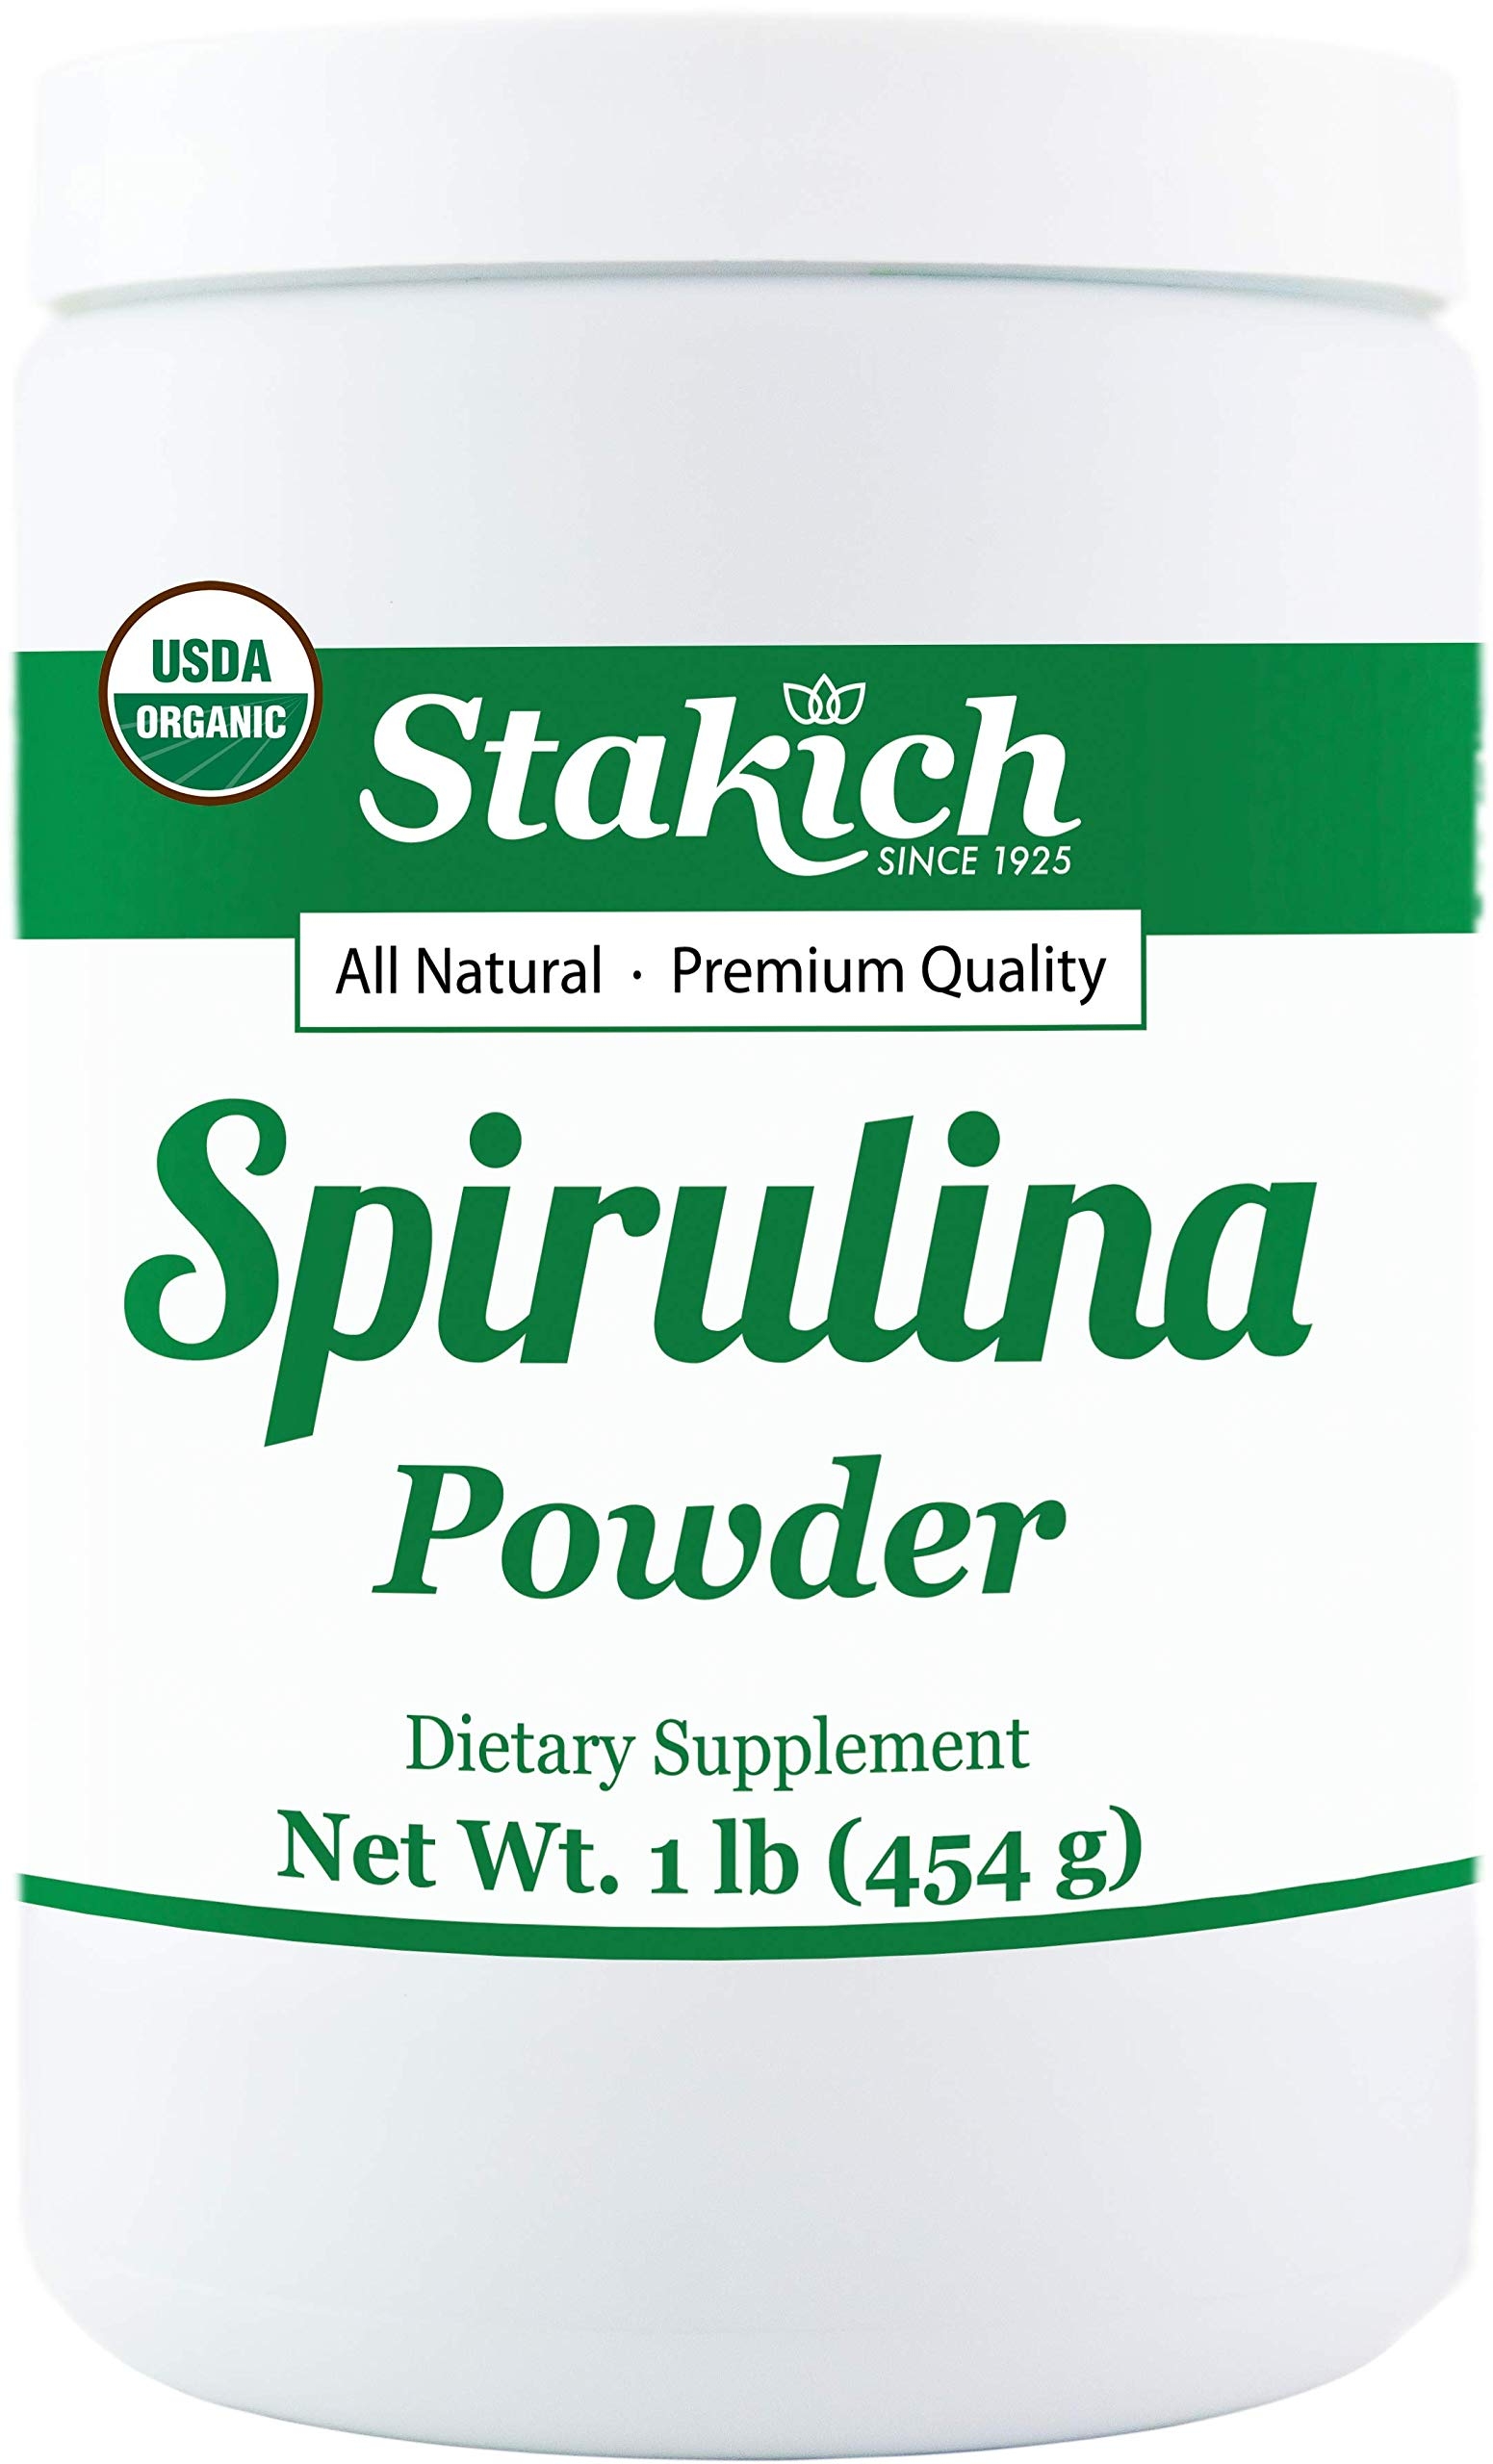 Stakich SPIRULINA POWDER 1 LB (16 oz) - USDA Organic, 100% Pure, All Natural, Top Quality